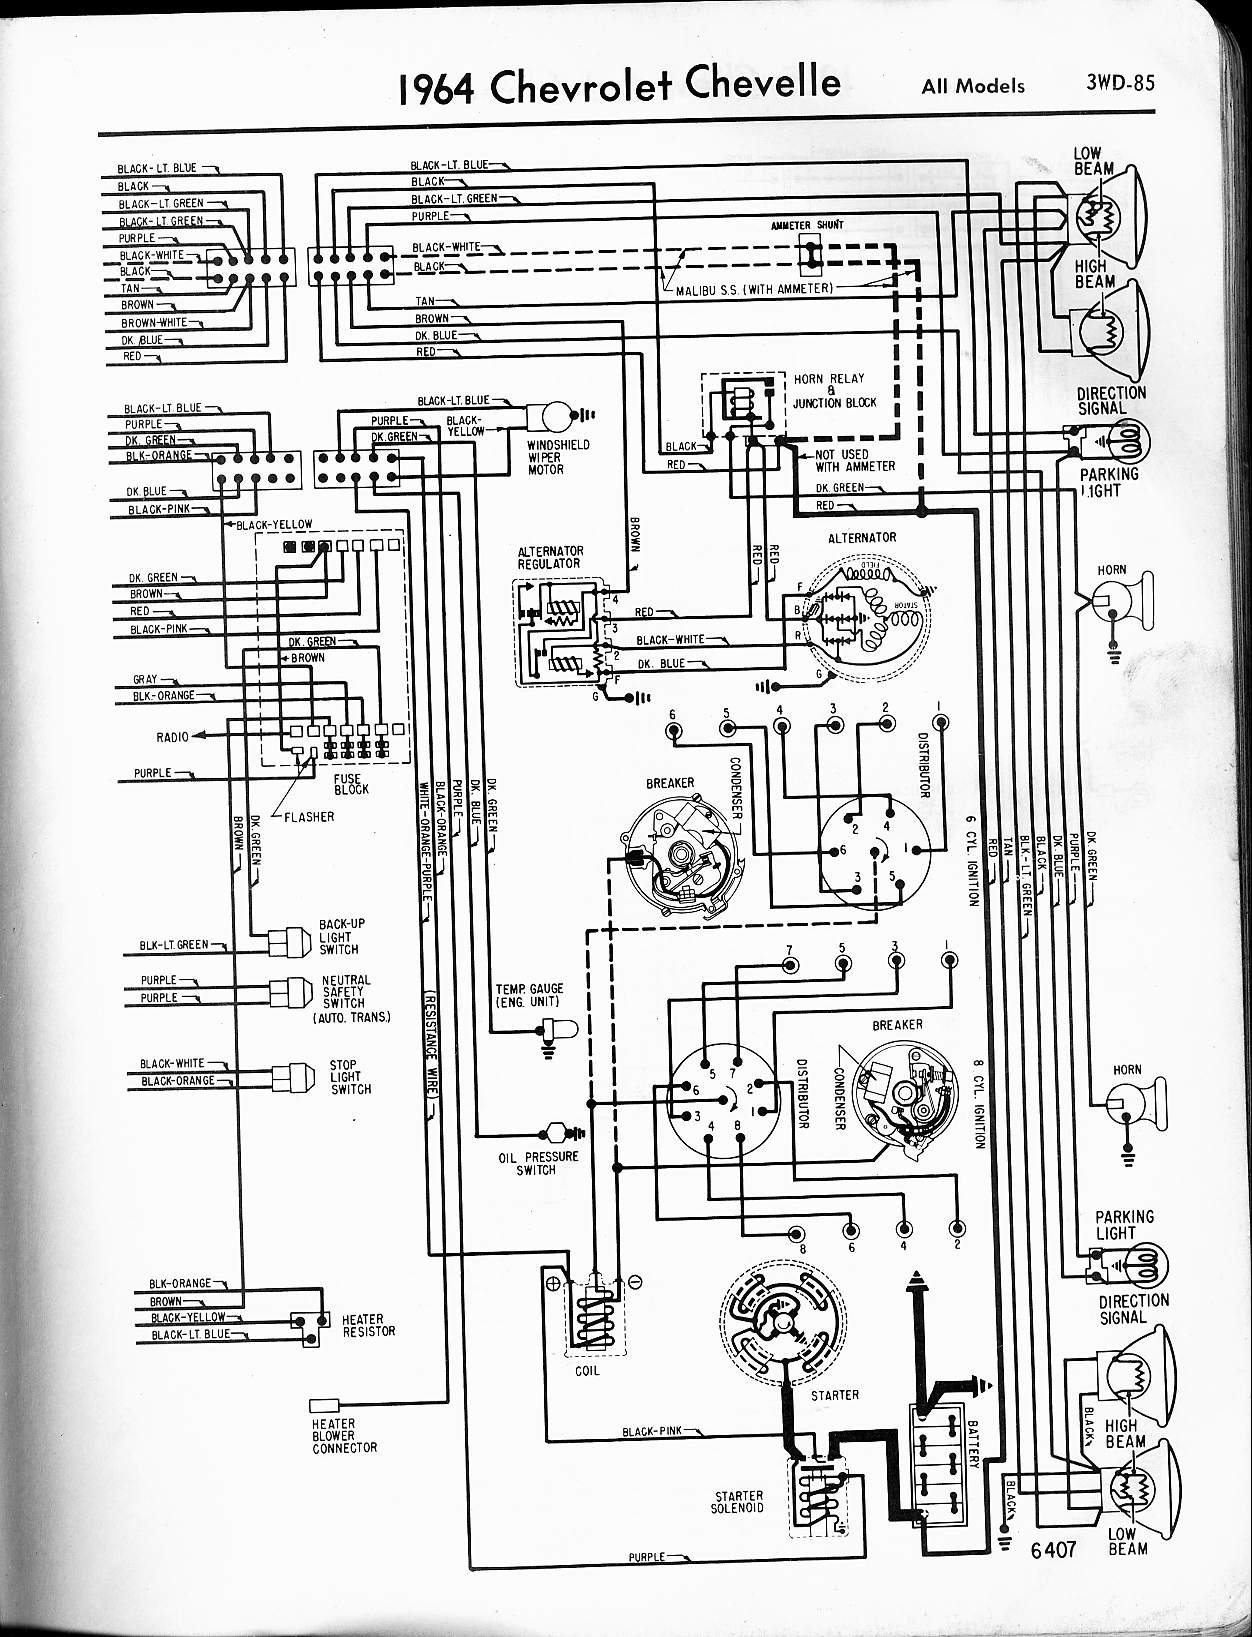 MWireChev64_3WD 085 chevy diagrams 1964 el camino wiring harness at bayanpartner.co